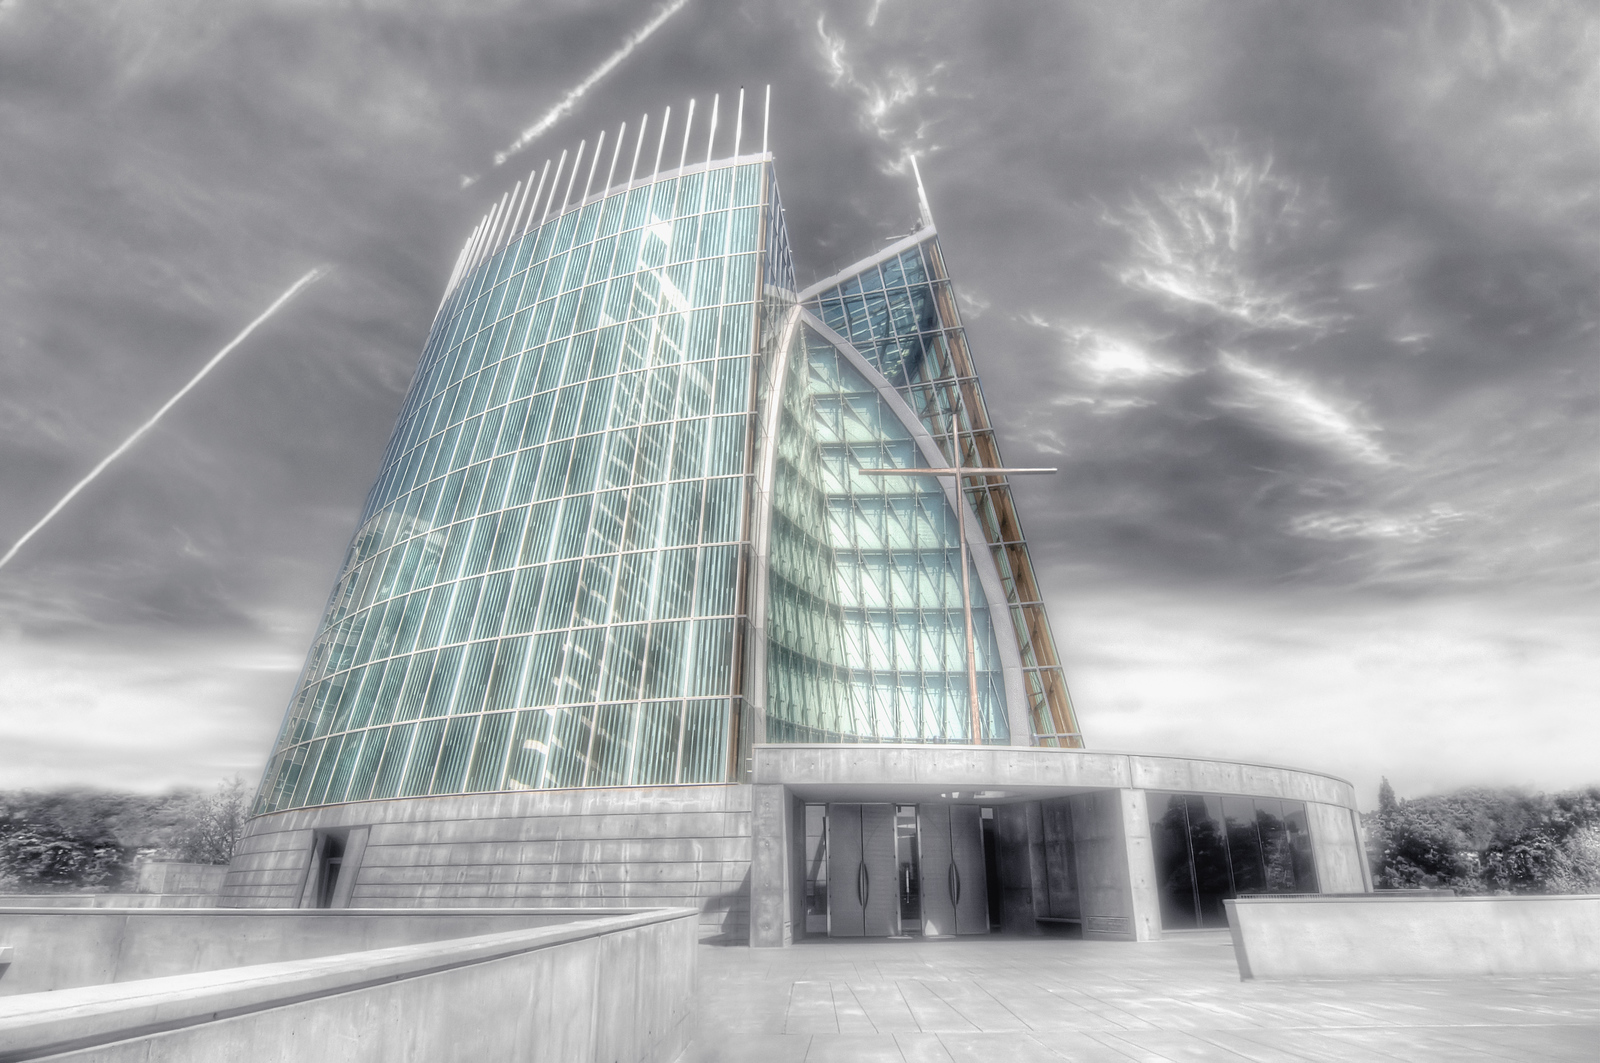 Oakland's Cathedral of Christ the Light